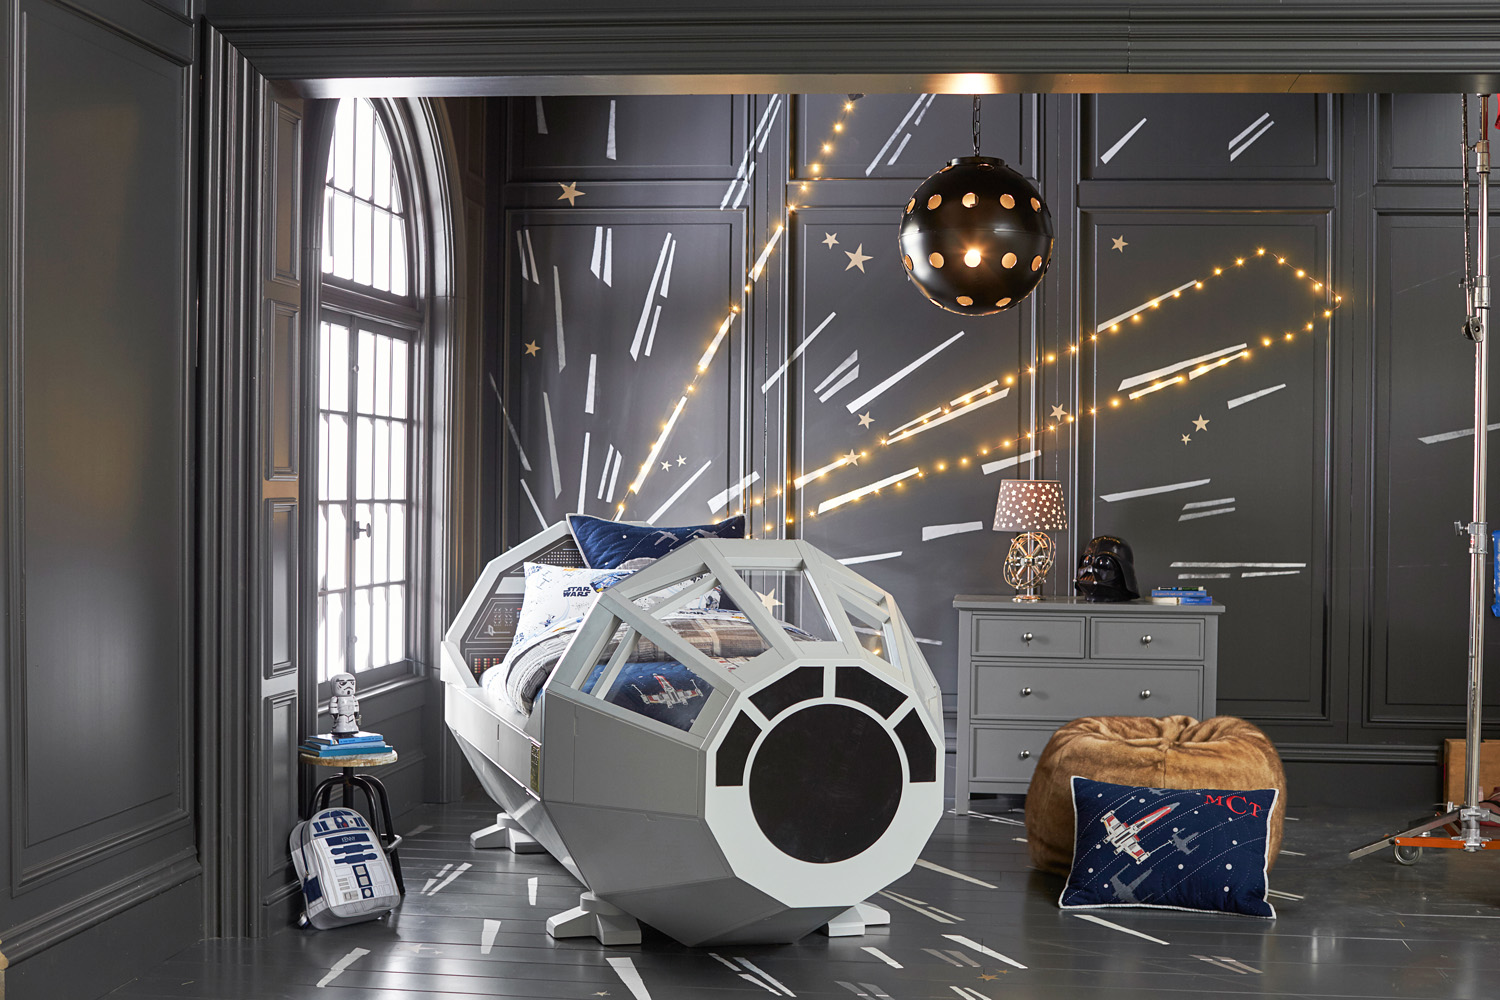 Pottery Barn Star Wars Collection   Preview    StarWars com Pottery Barn Millennium Falcon bed  Star Wars